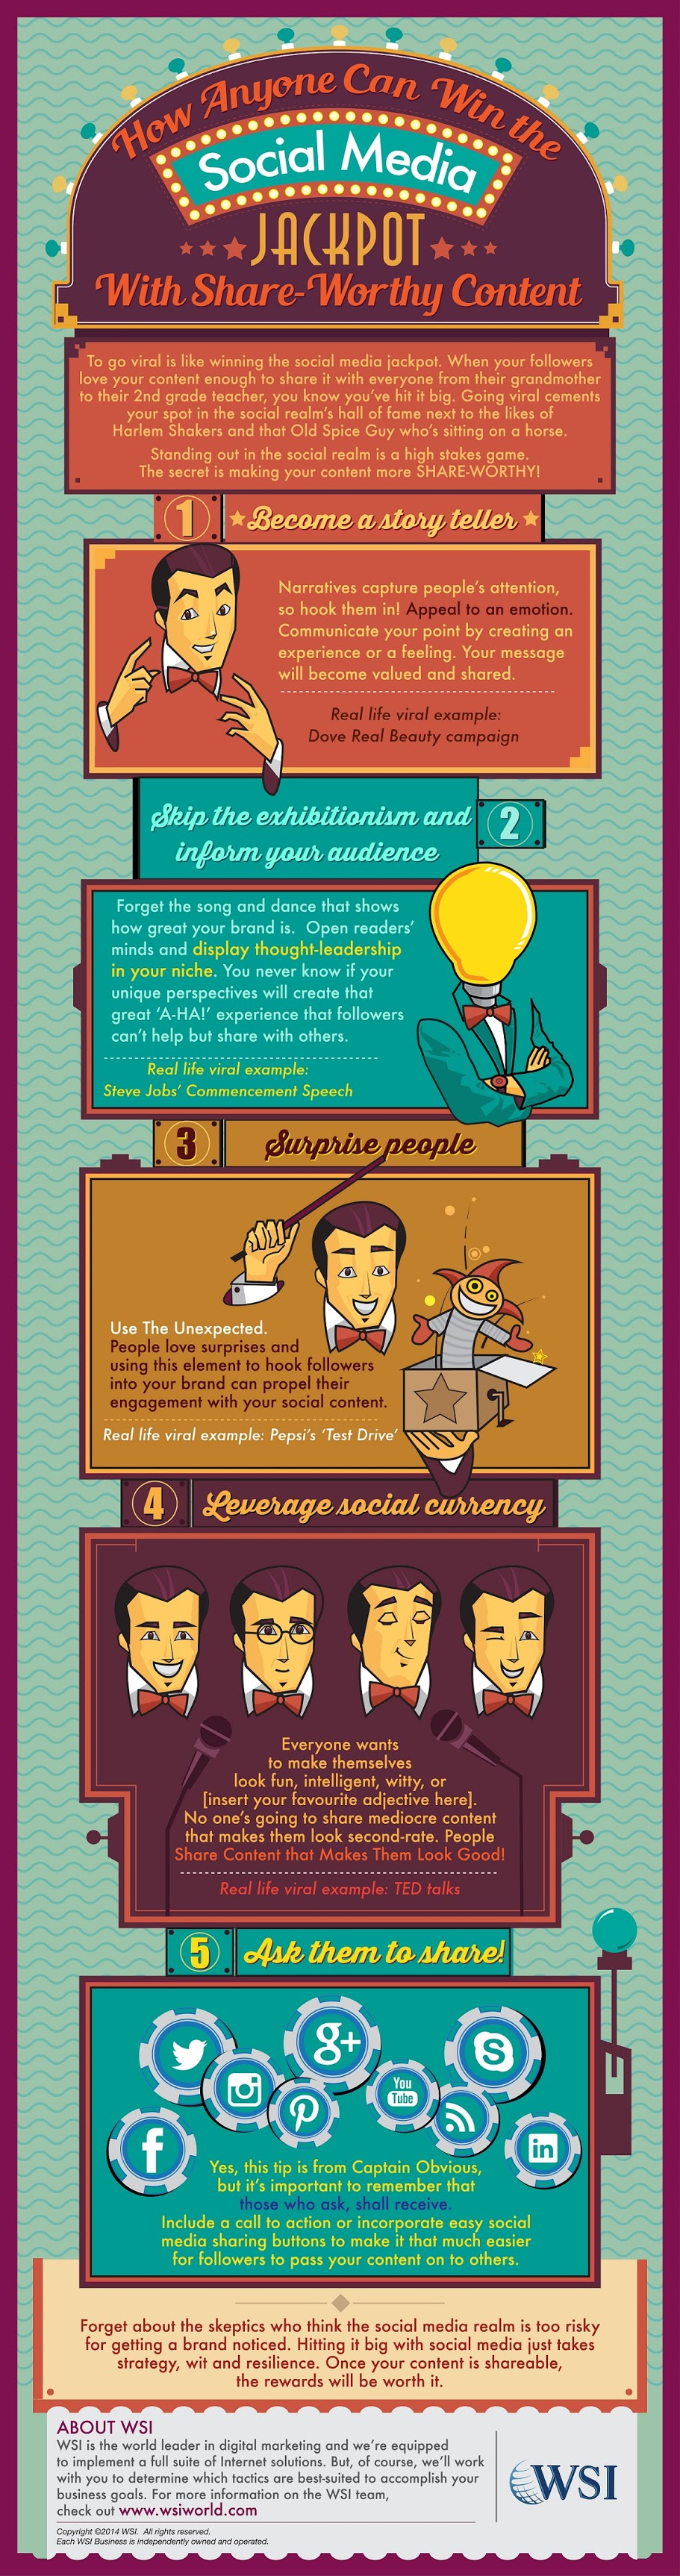 How Anyone Can Win The Social Media Jackpot With Share-Worthy Content - infographic #socialmedia marketing for businesses